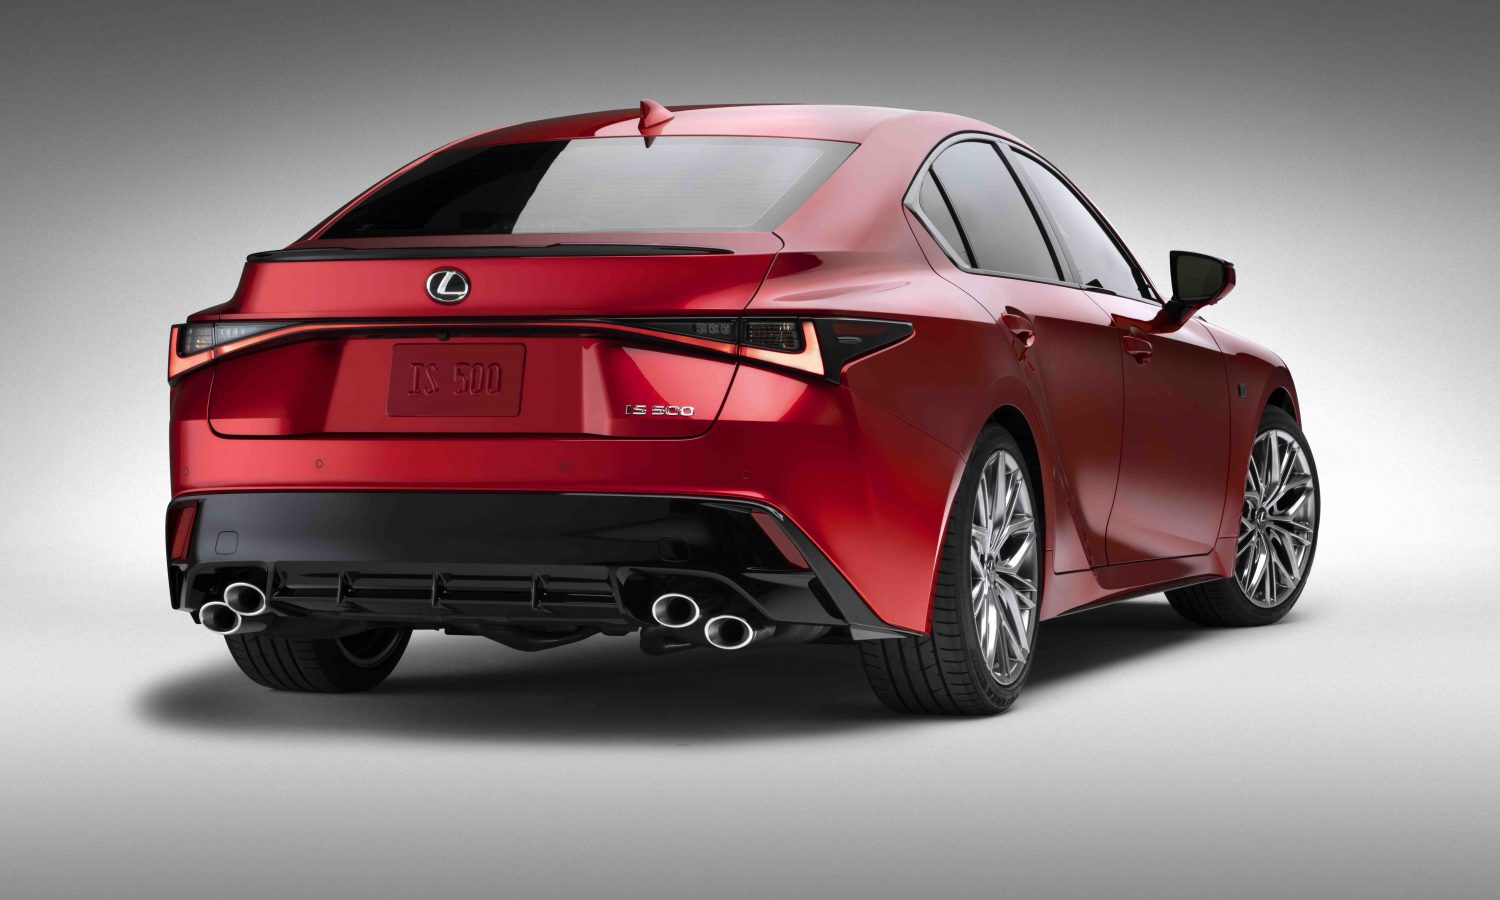 2022 LEXUS IS 500: A NEW BREED OF F SPORT PERFORMANCE